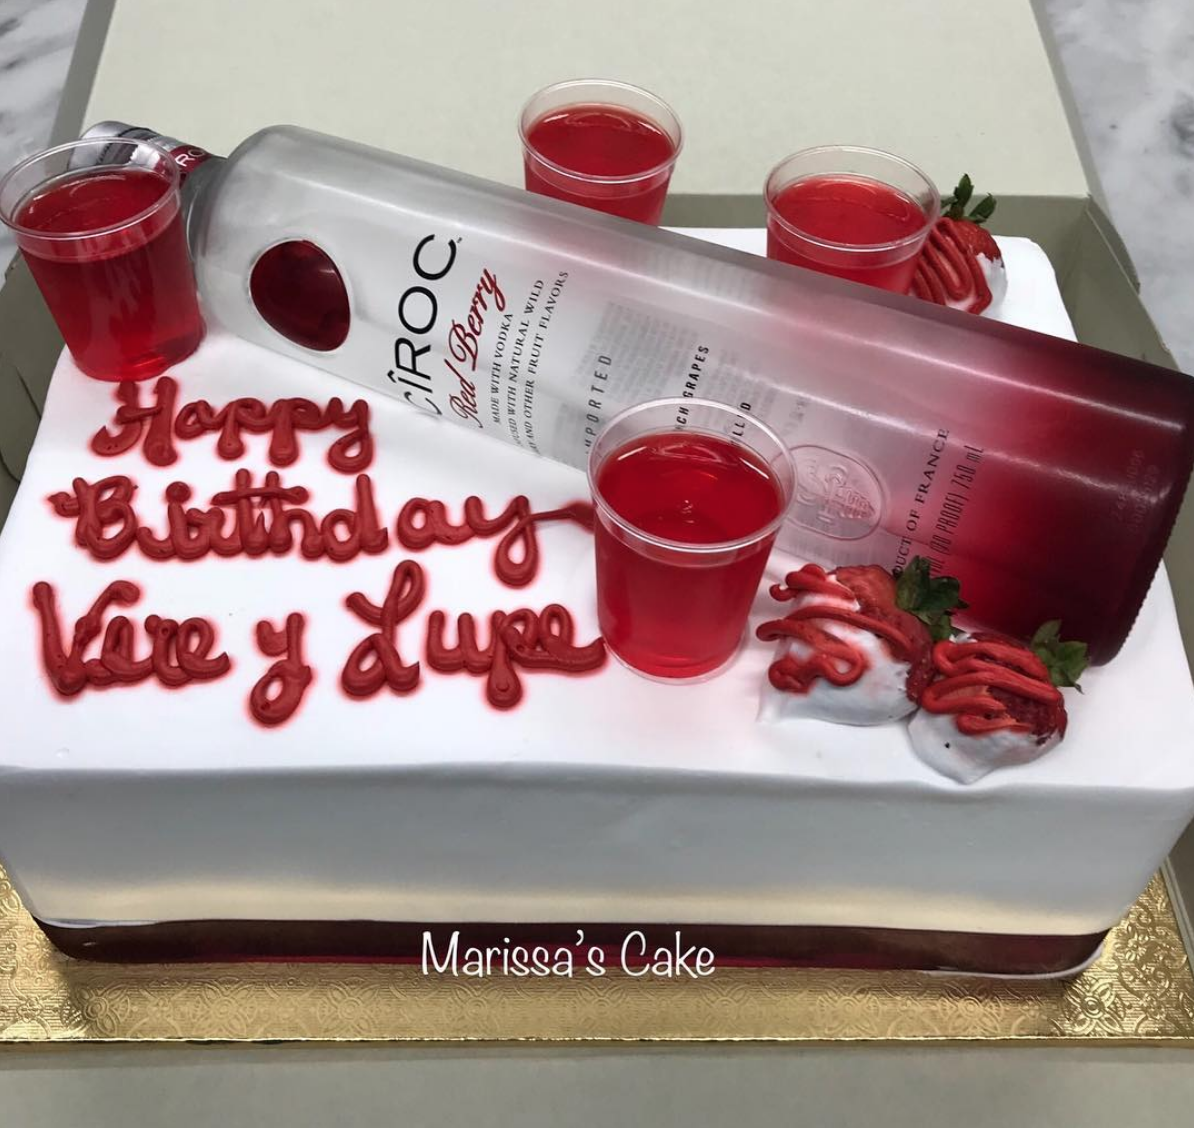 Super Ciroc Vodka Custom Birthday Cake Marissascake Artmarissas Funny Birthday Cards Online Fluifree Goldxyz